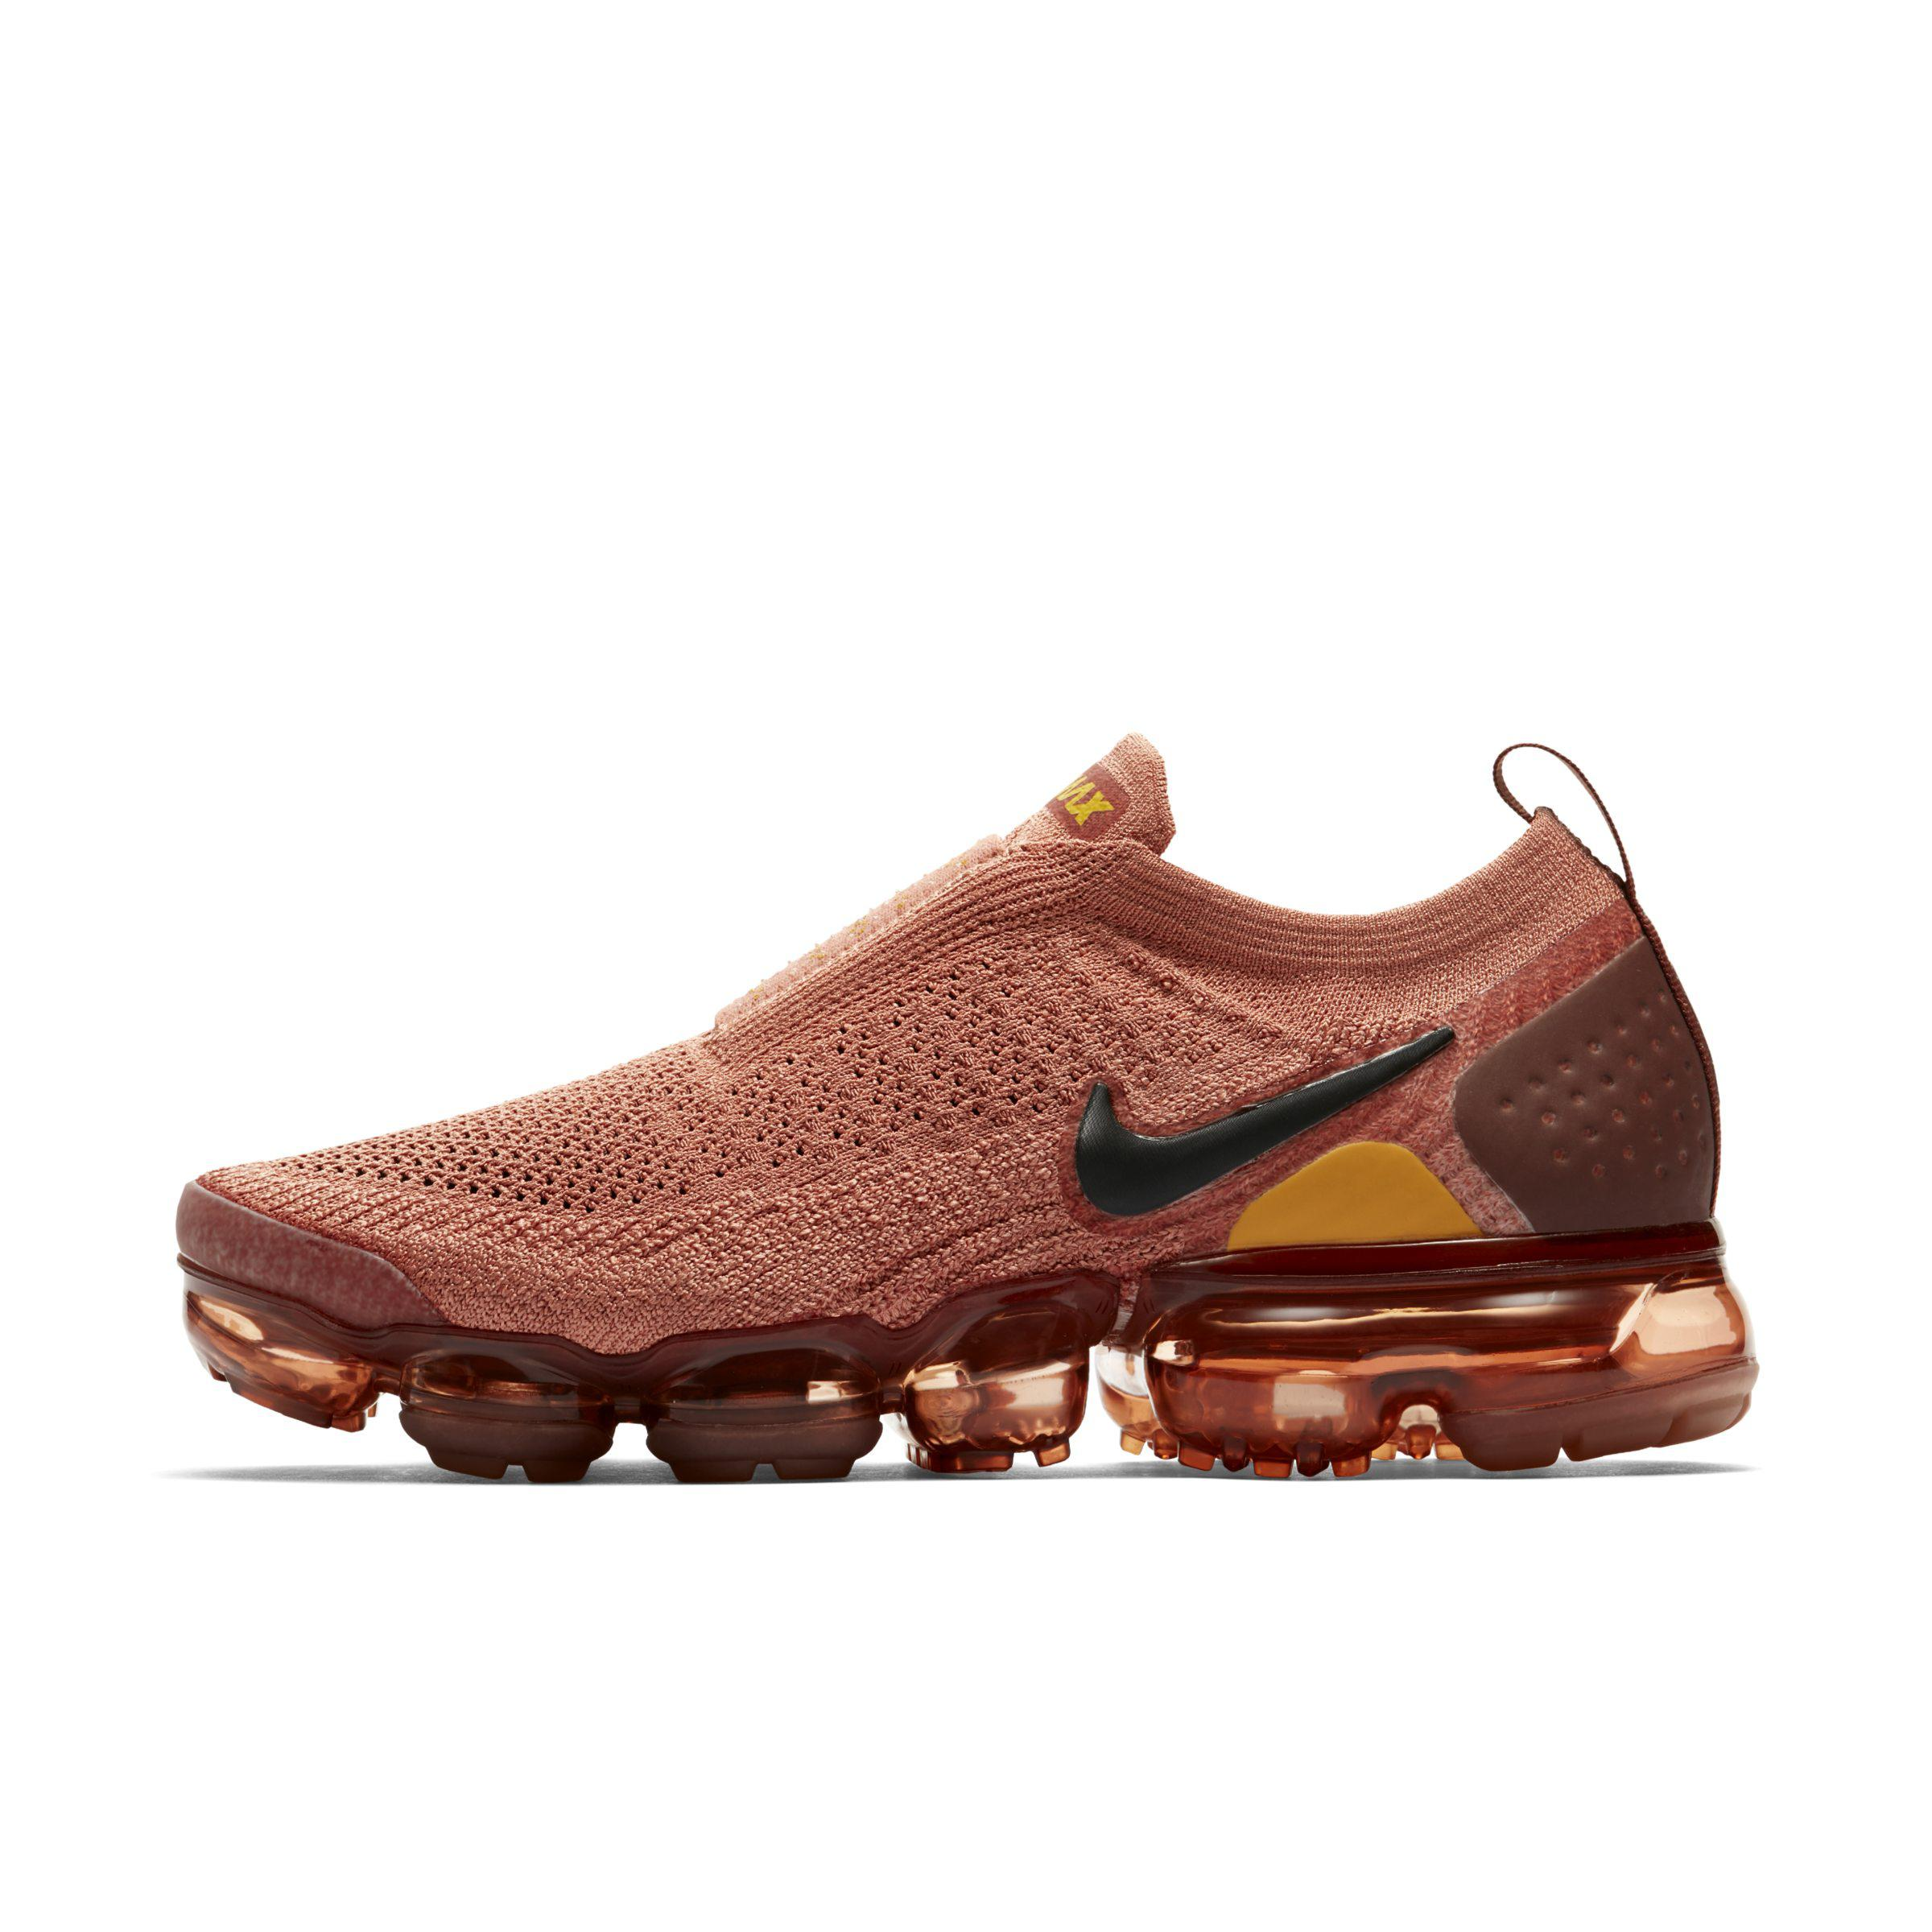 factory price d081f df2e8 Nike Air Vapormax Flyknit Moc 2 Shoe in Brown - Lyst